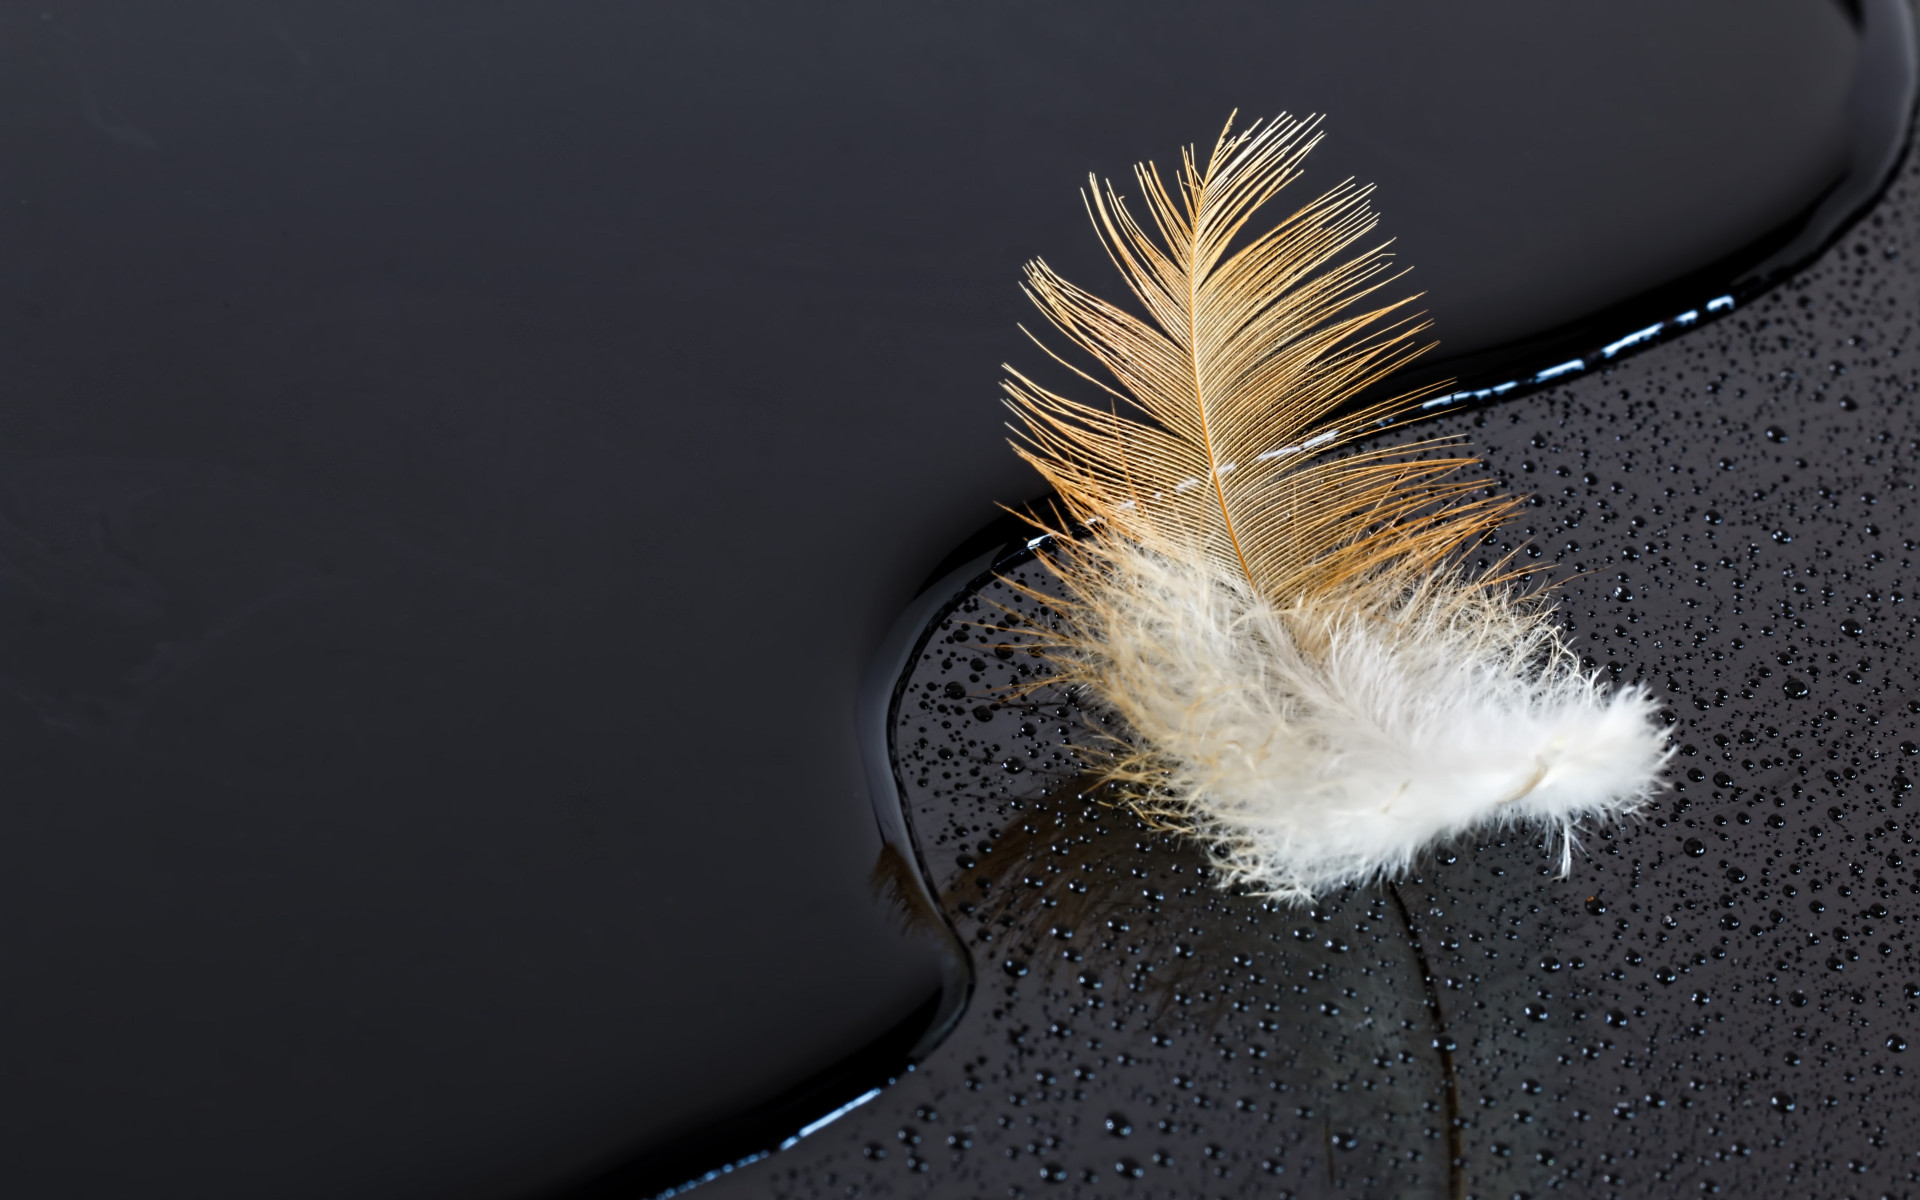 Dark surface with a feather on water wallpaper 1920x1200